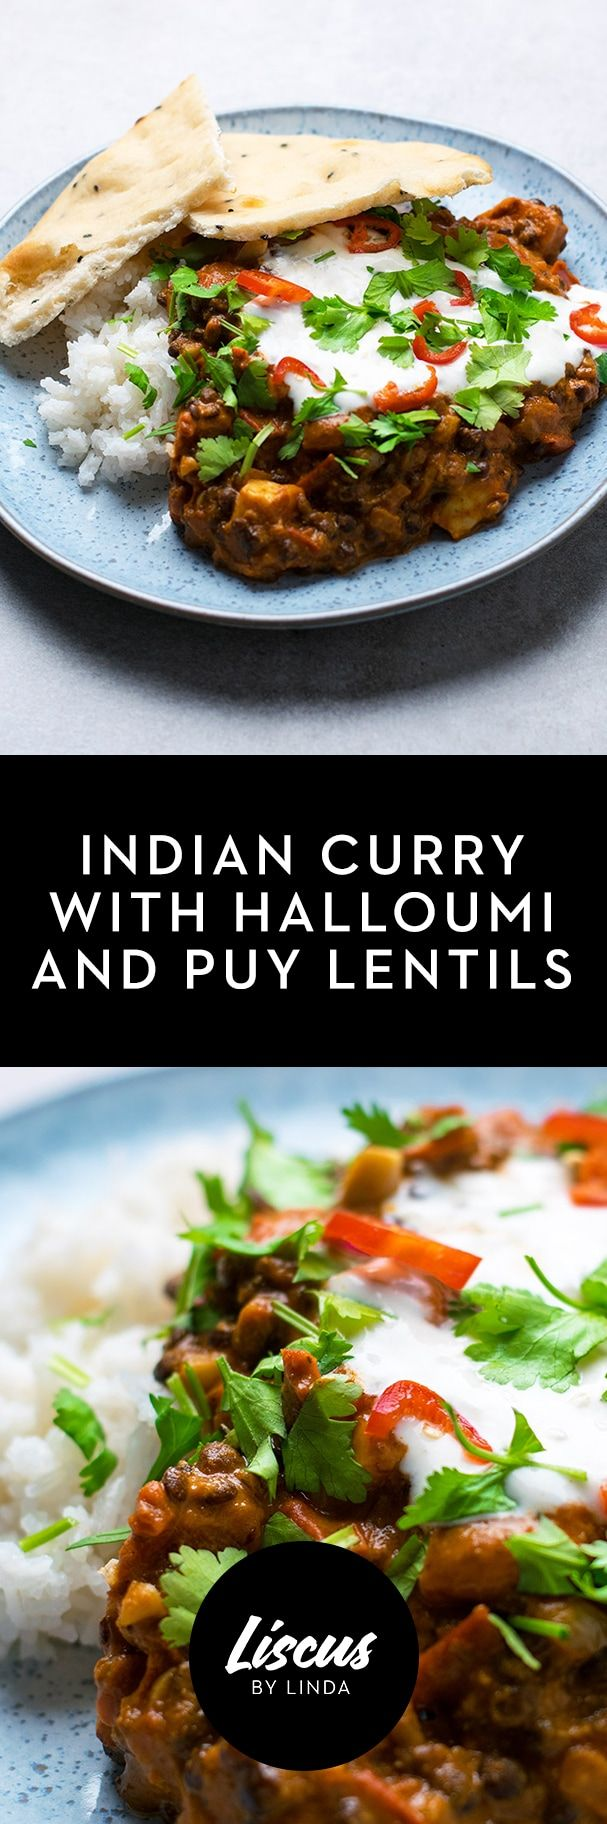 Indian Curry With Halloumi And Puy Lentils Curry Recipes Veggie Recipes Cooking Recipes